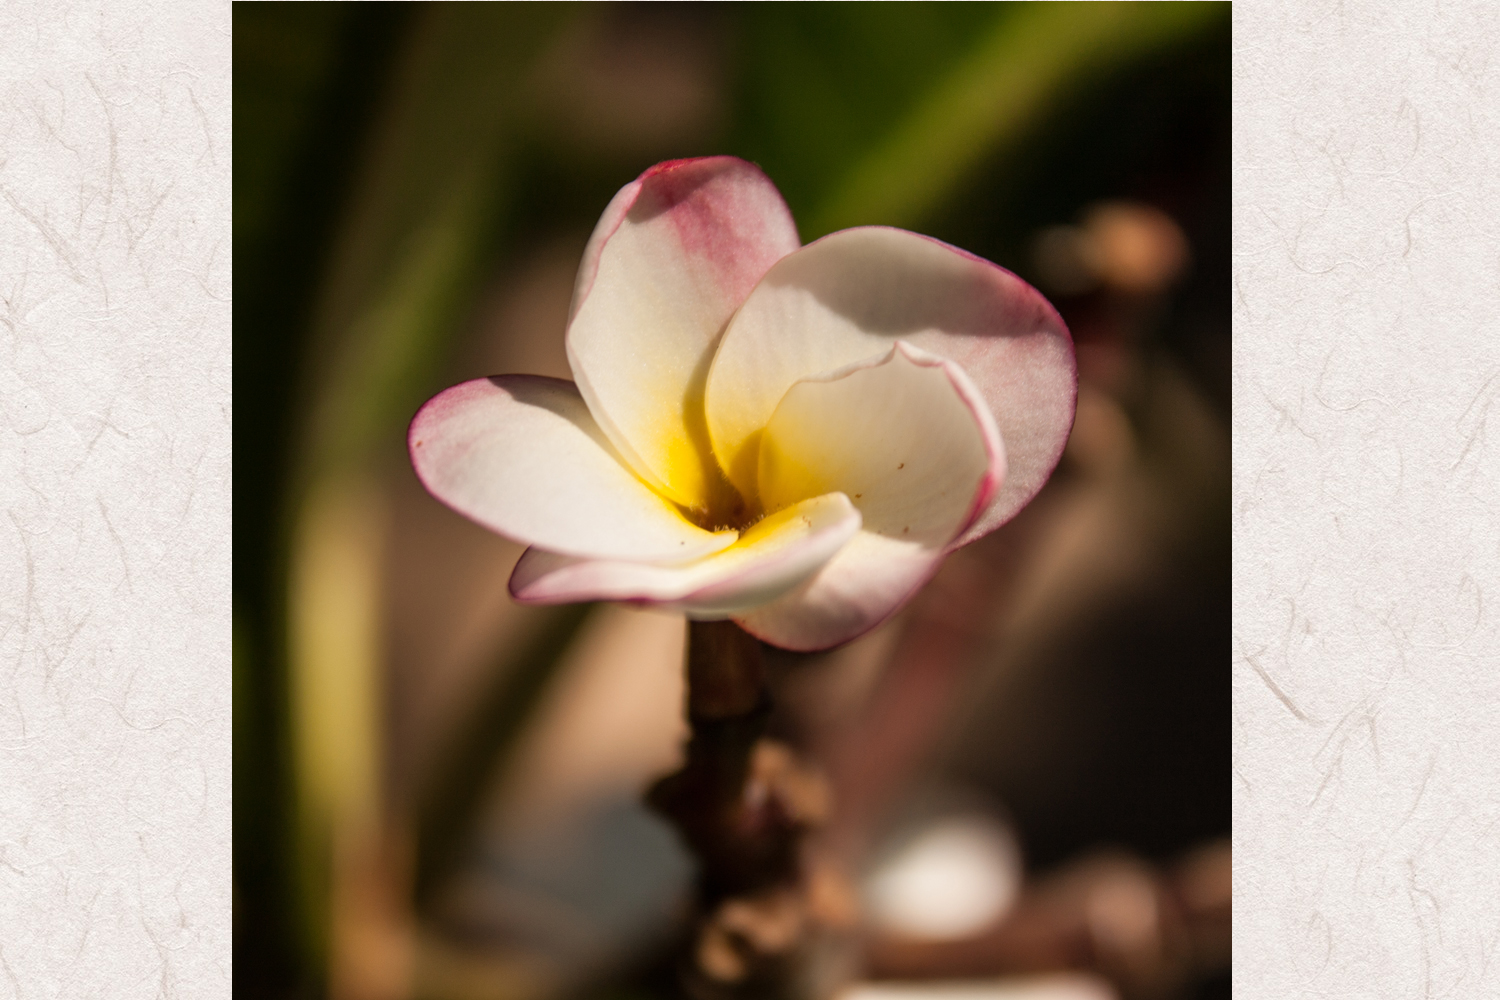 Plumeria flower photo 3 example image 1